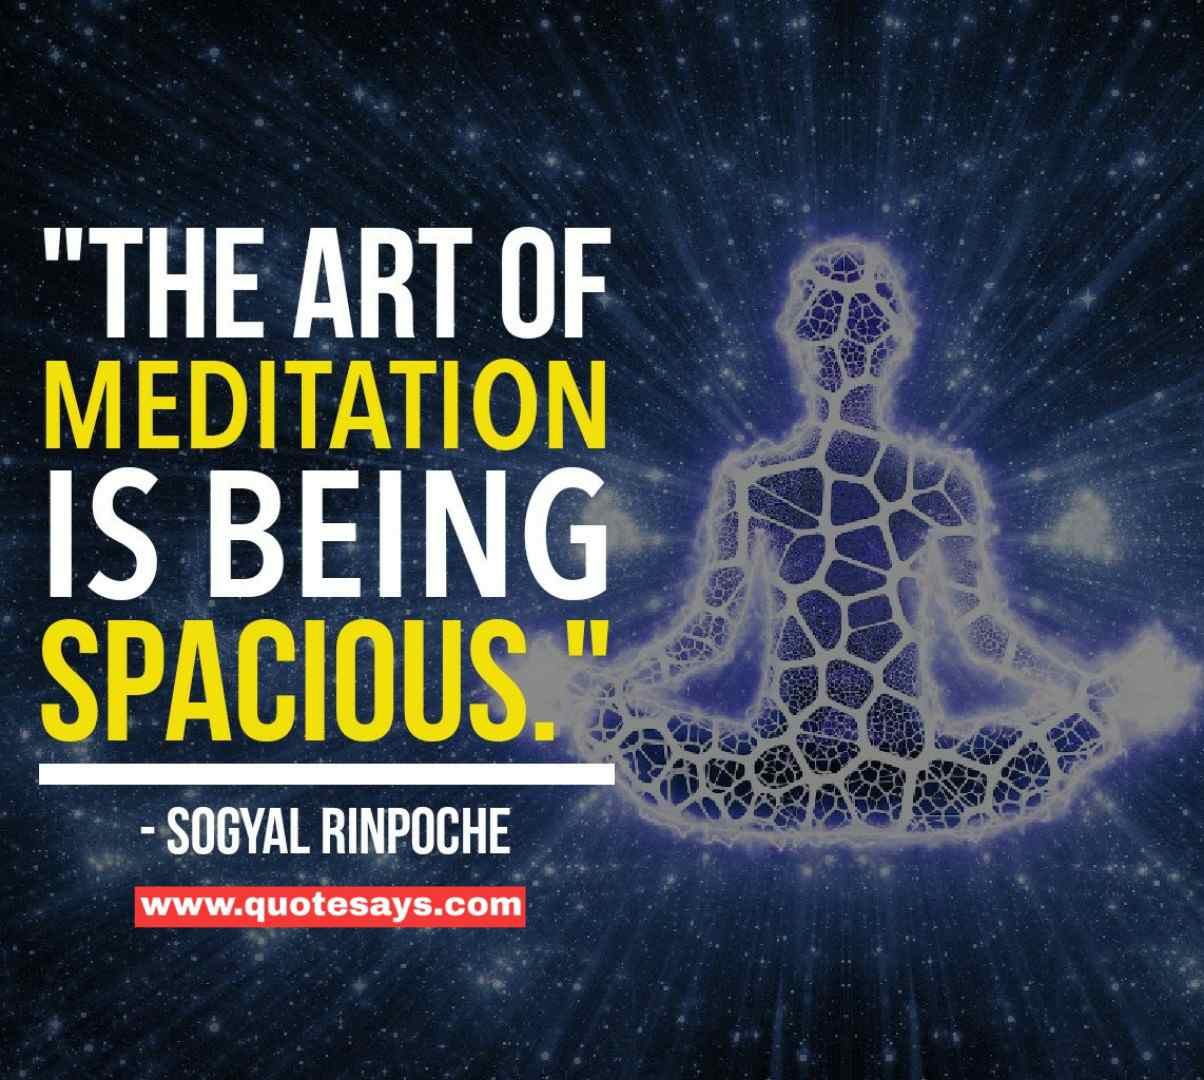 Quotes on meditation